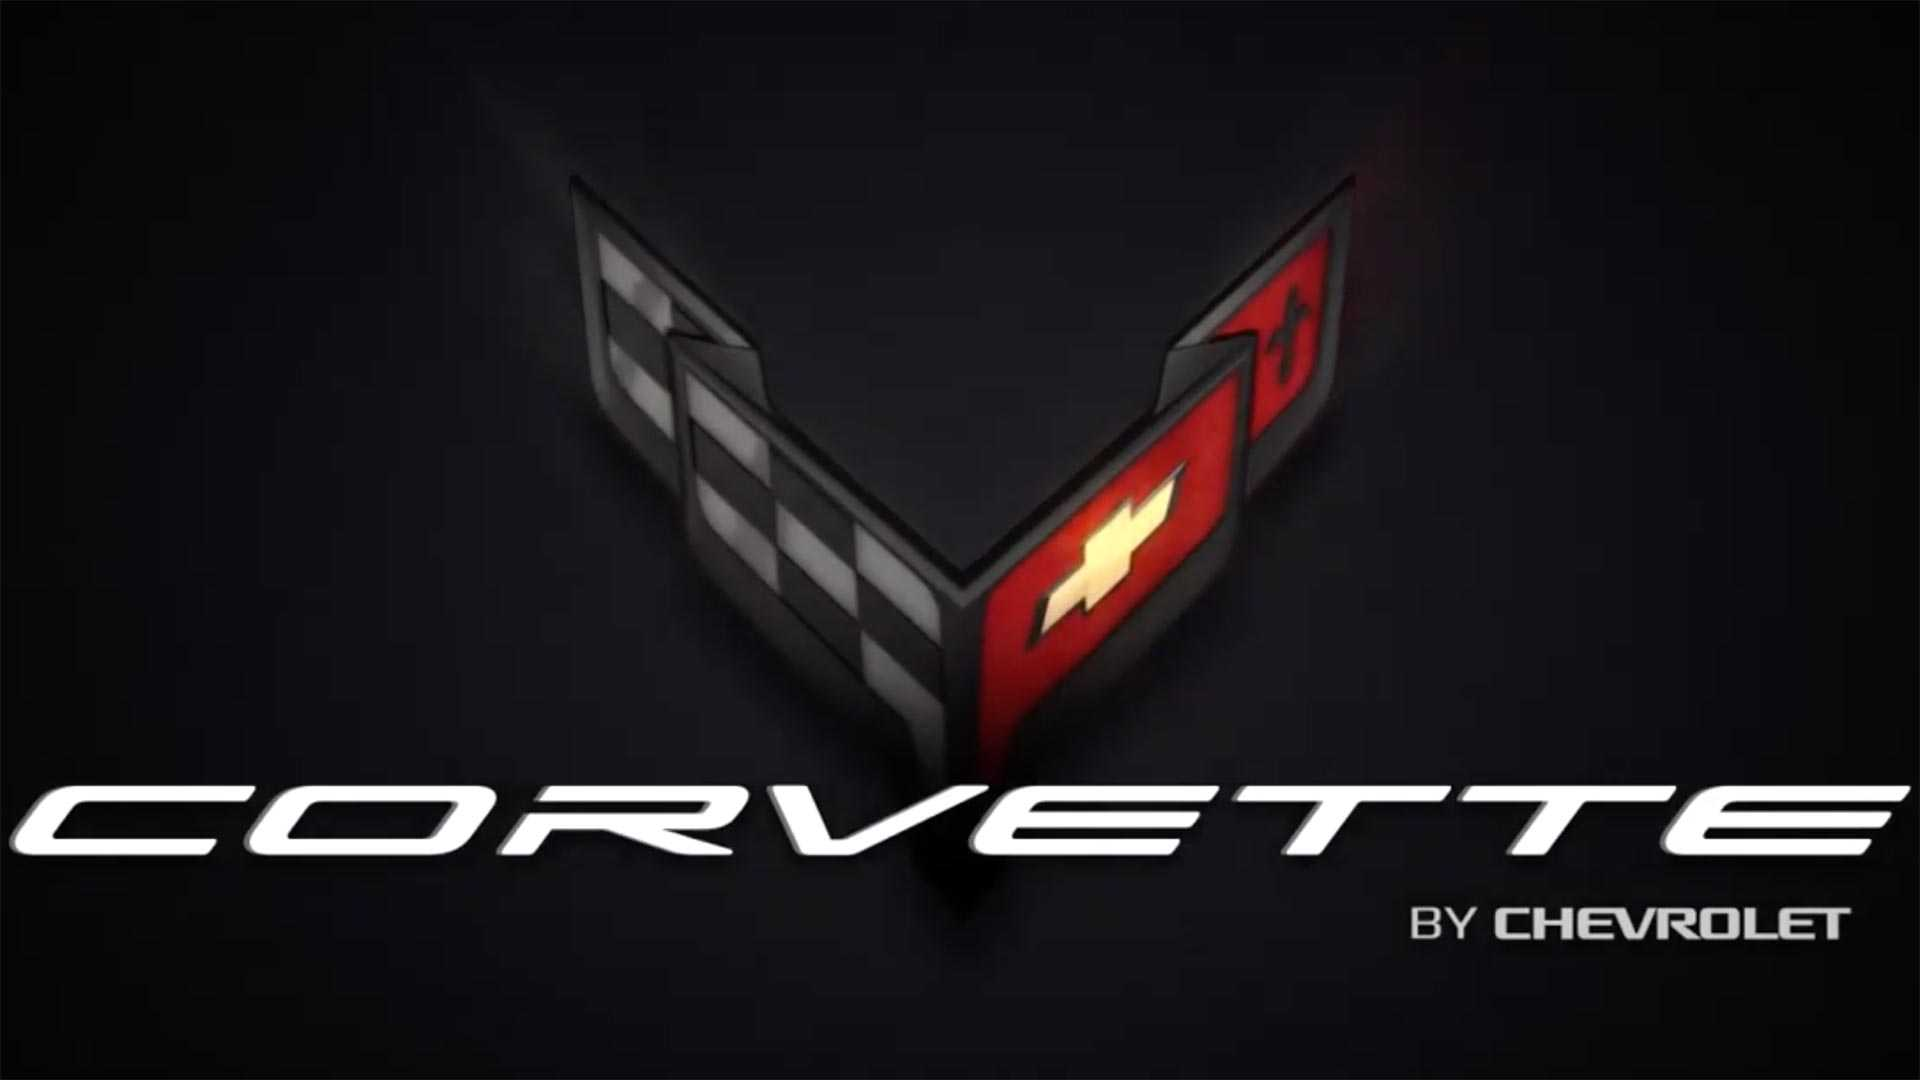 Mid Engined Chevy Corvette Startup Animation Leaks Online